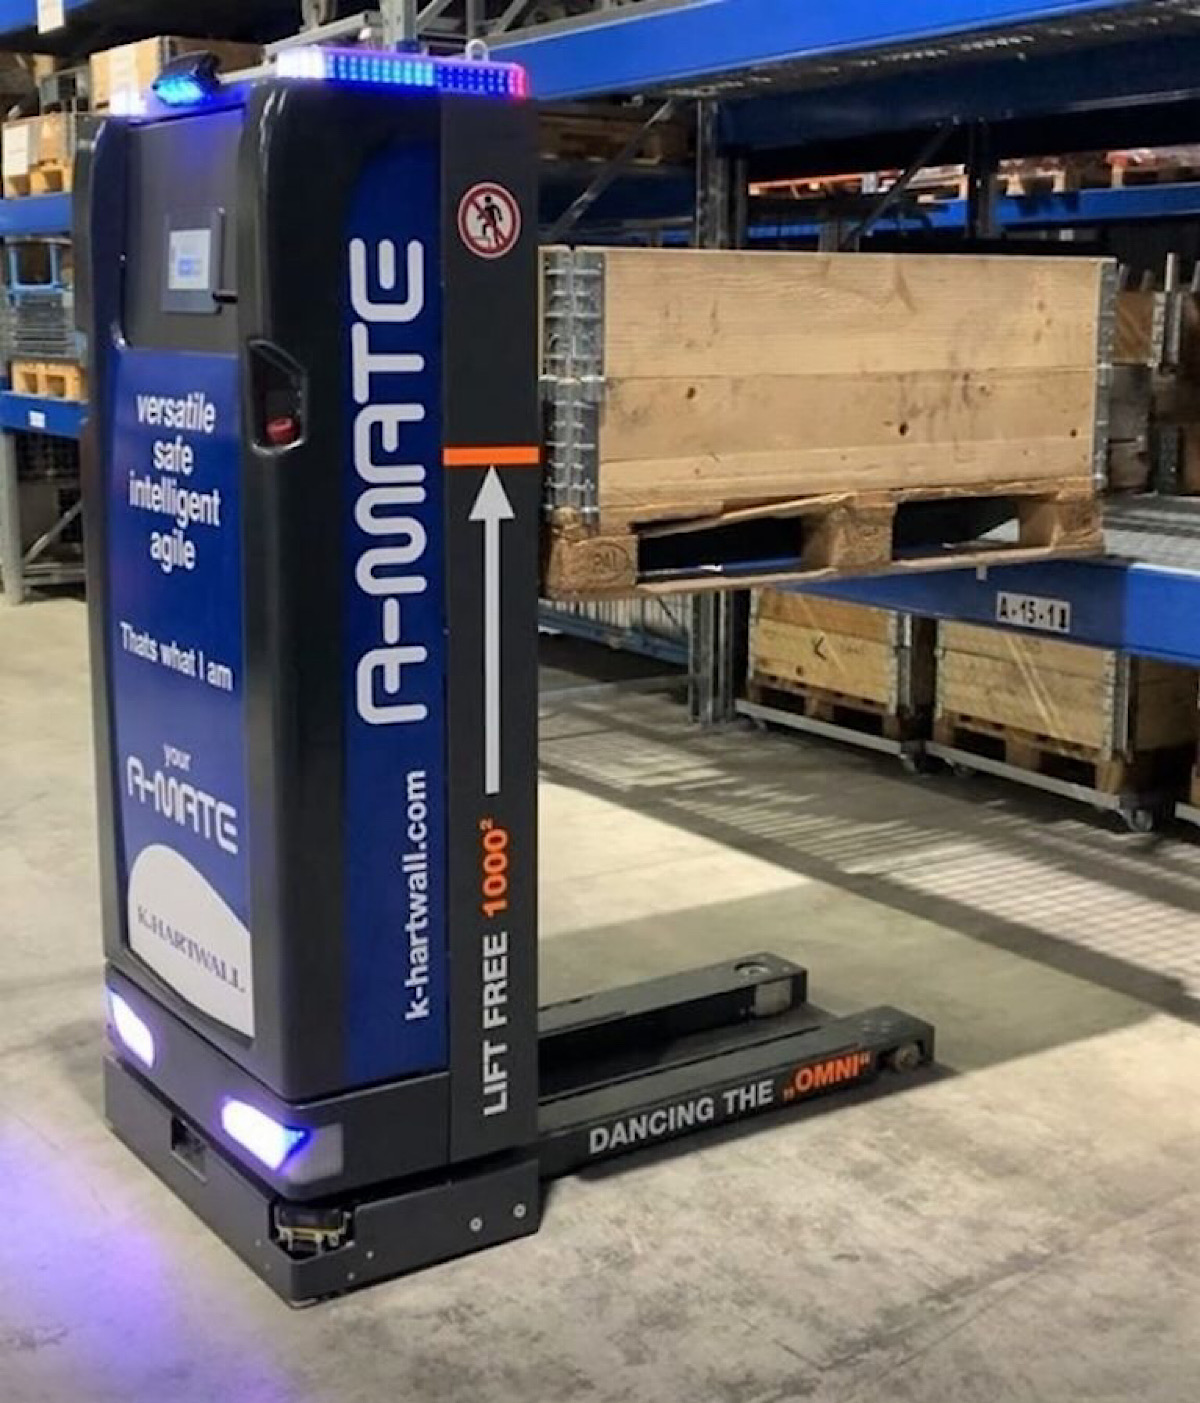 K.Hartwall launches new 'autonomous mobile robot'